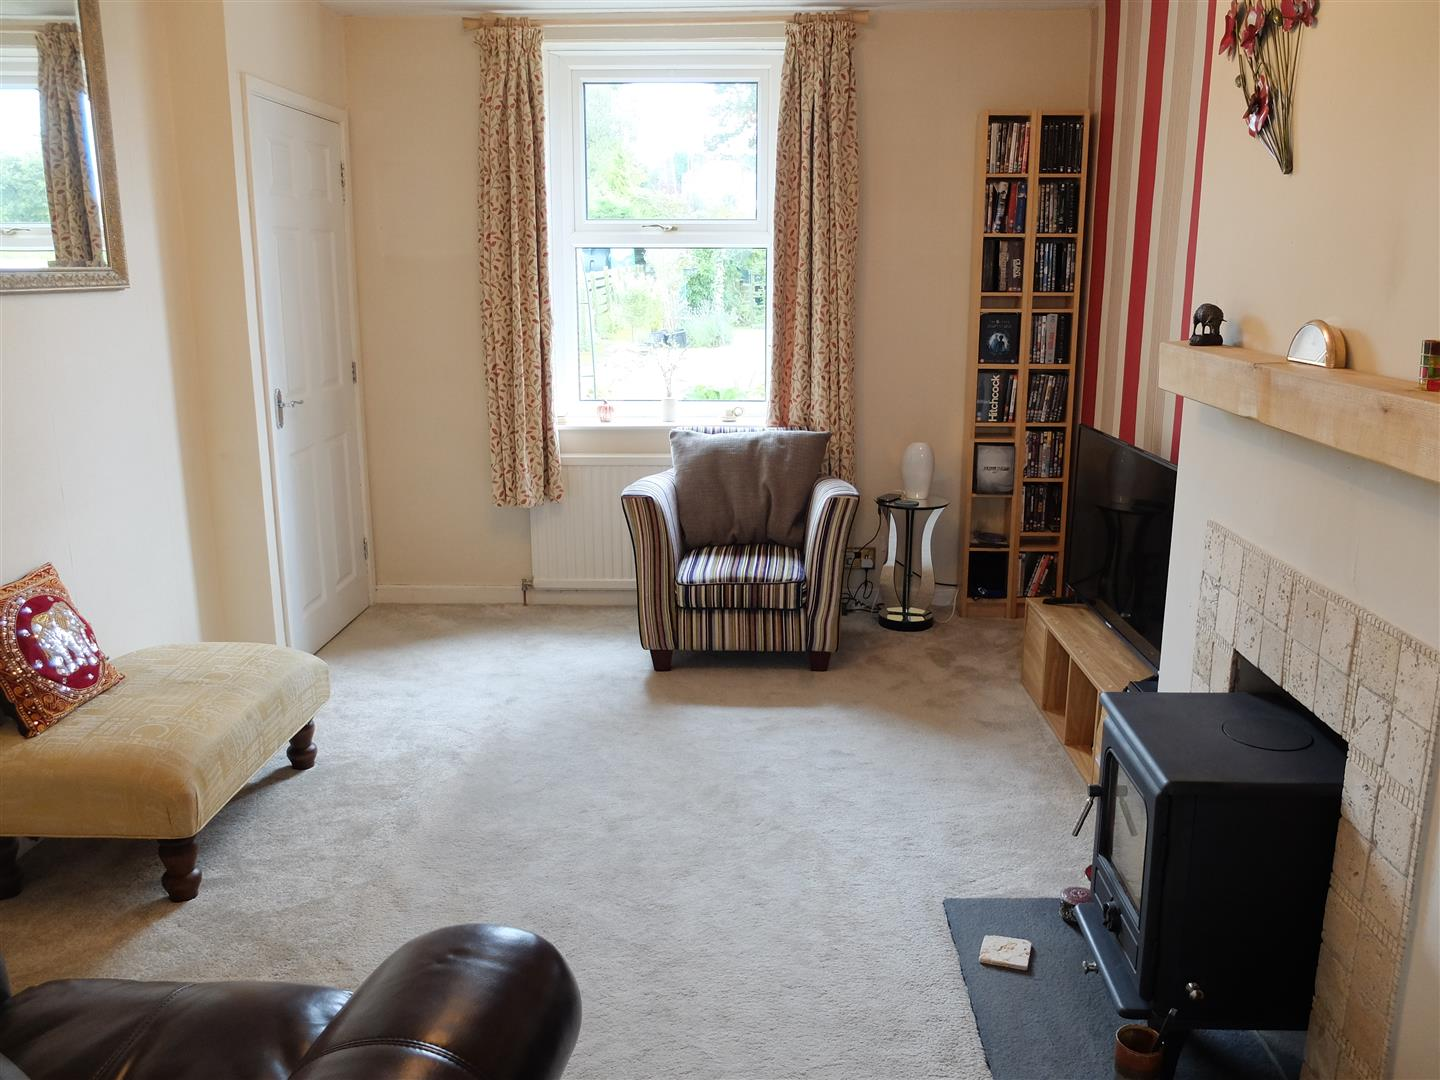 2 Bedrooms House - Mid Terrace For Sale 3 James Terrace Brampton